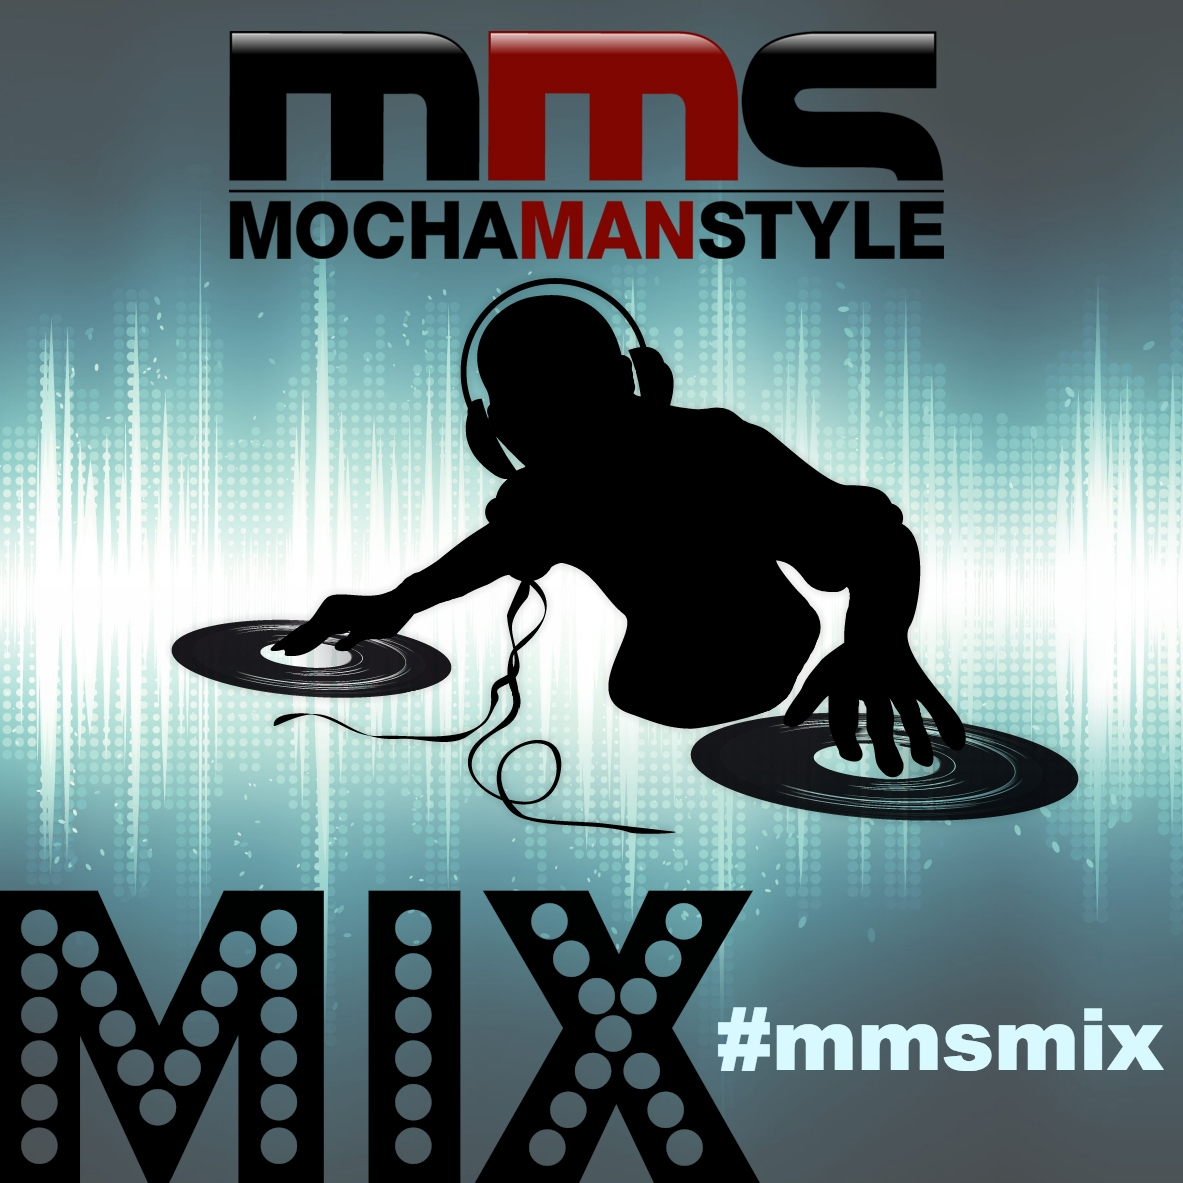 Mocha Man Style Music Mix Playlist (3-28-14) #MMSMIX